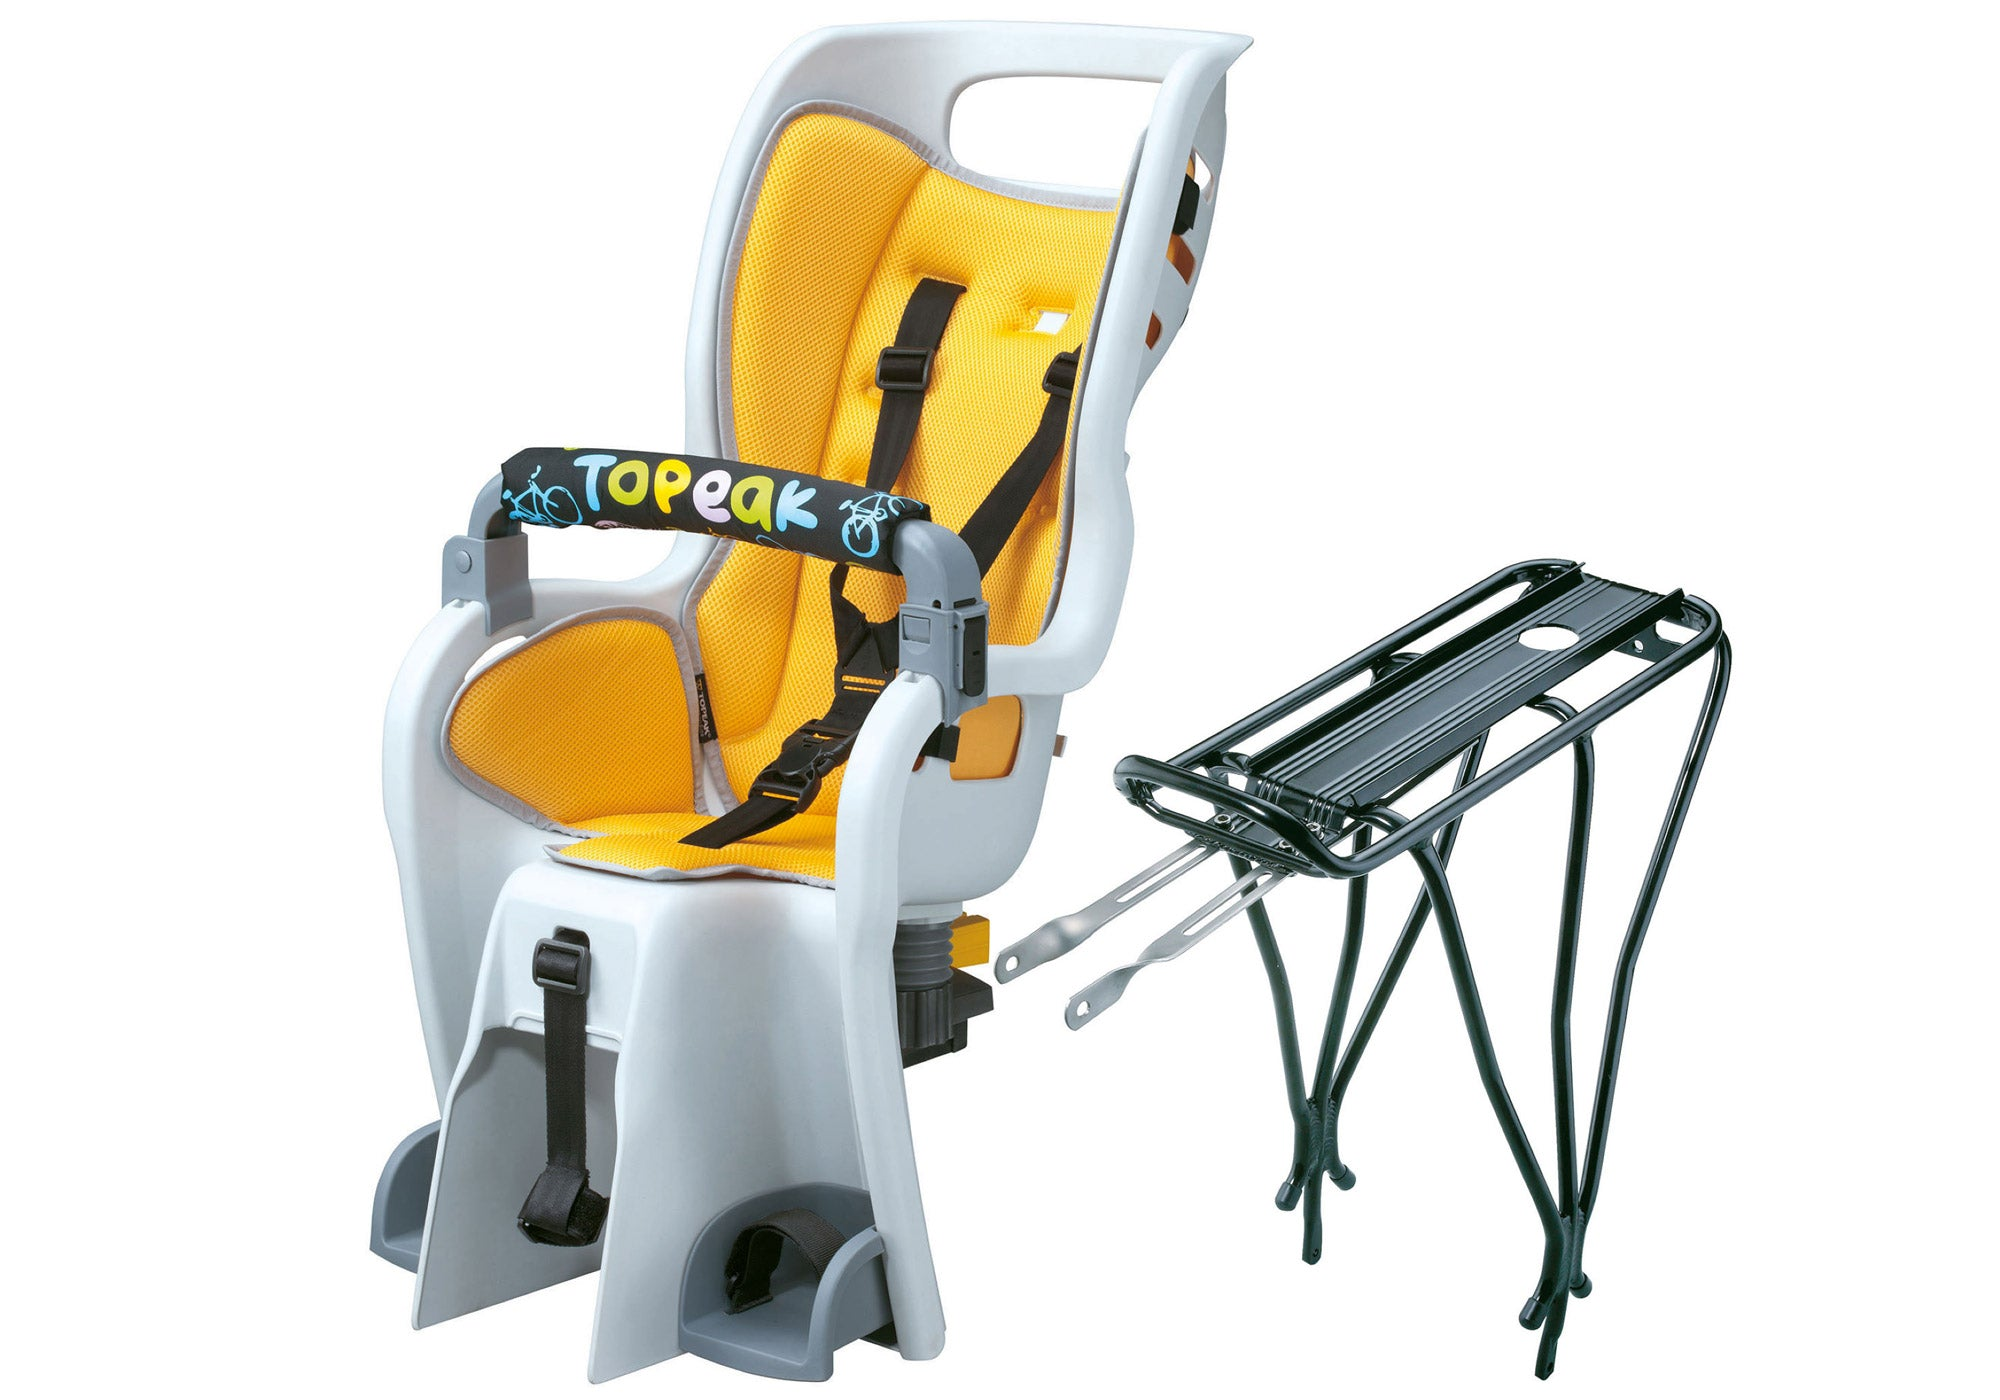 Topeak Babyseat 2 With Rack To Suit Disc/Non Disc Bikes